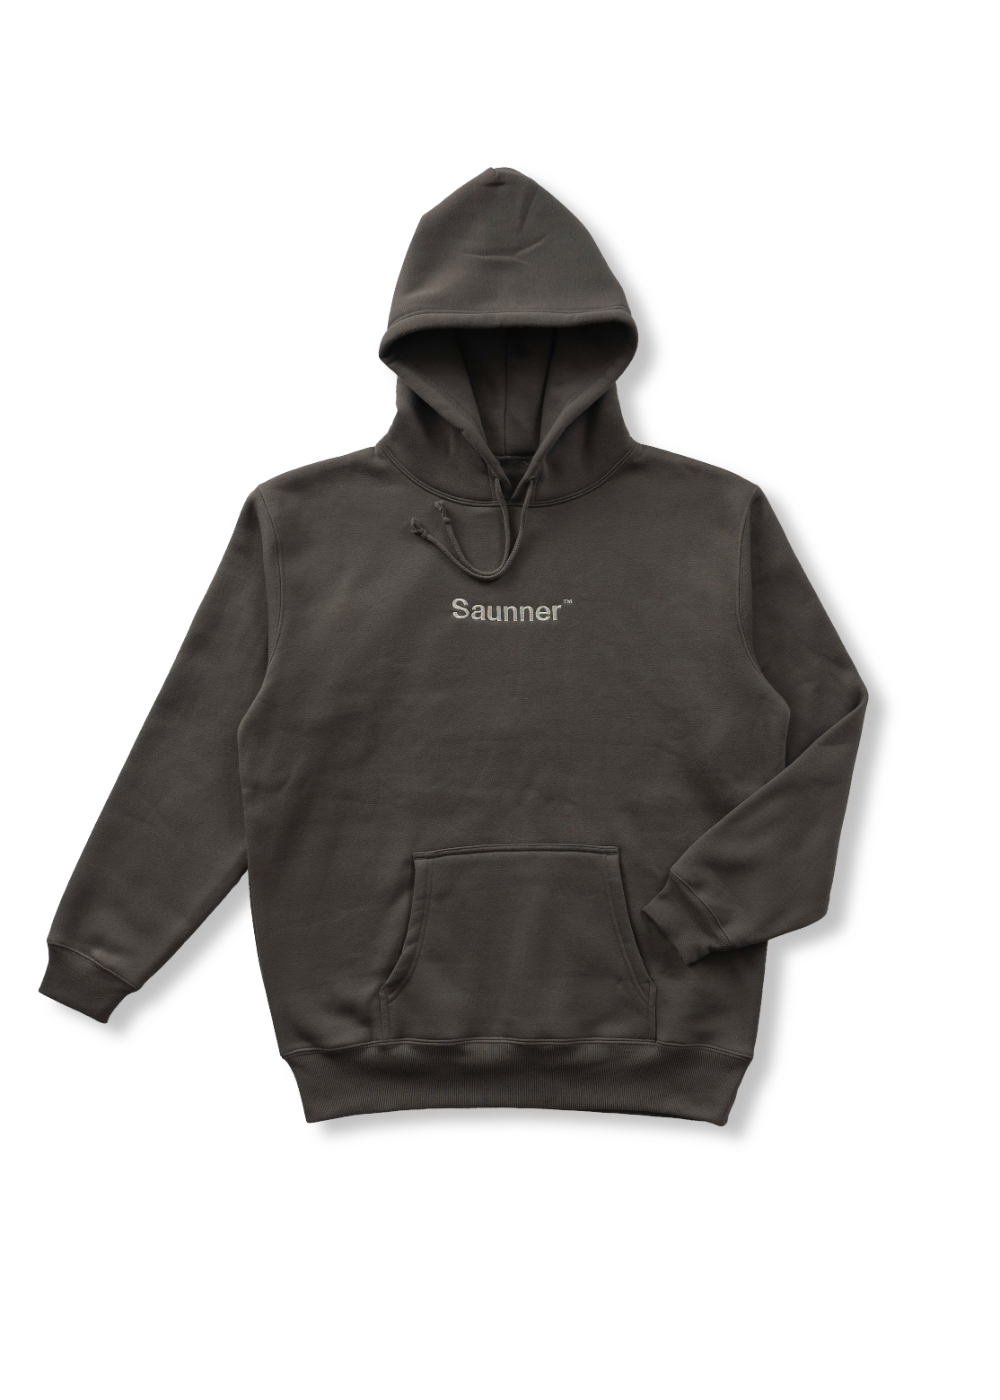 Saunner ™ Logo Hooded Sweatshirt - Gray